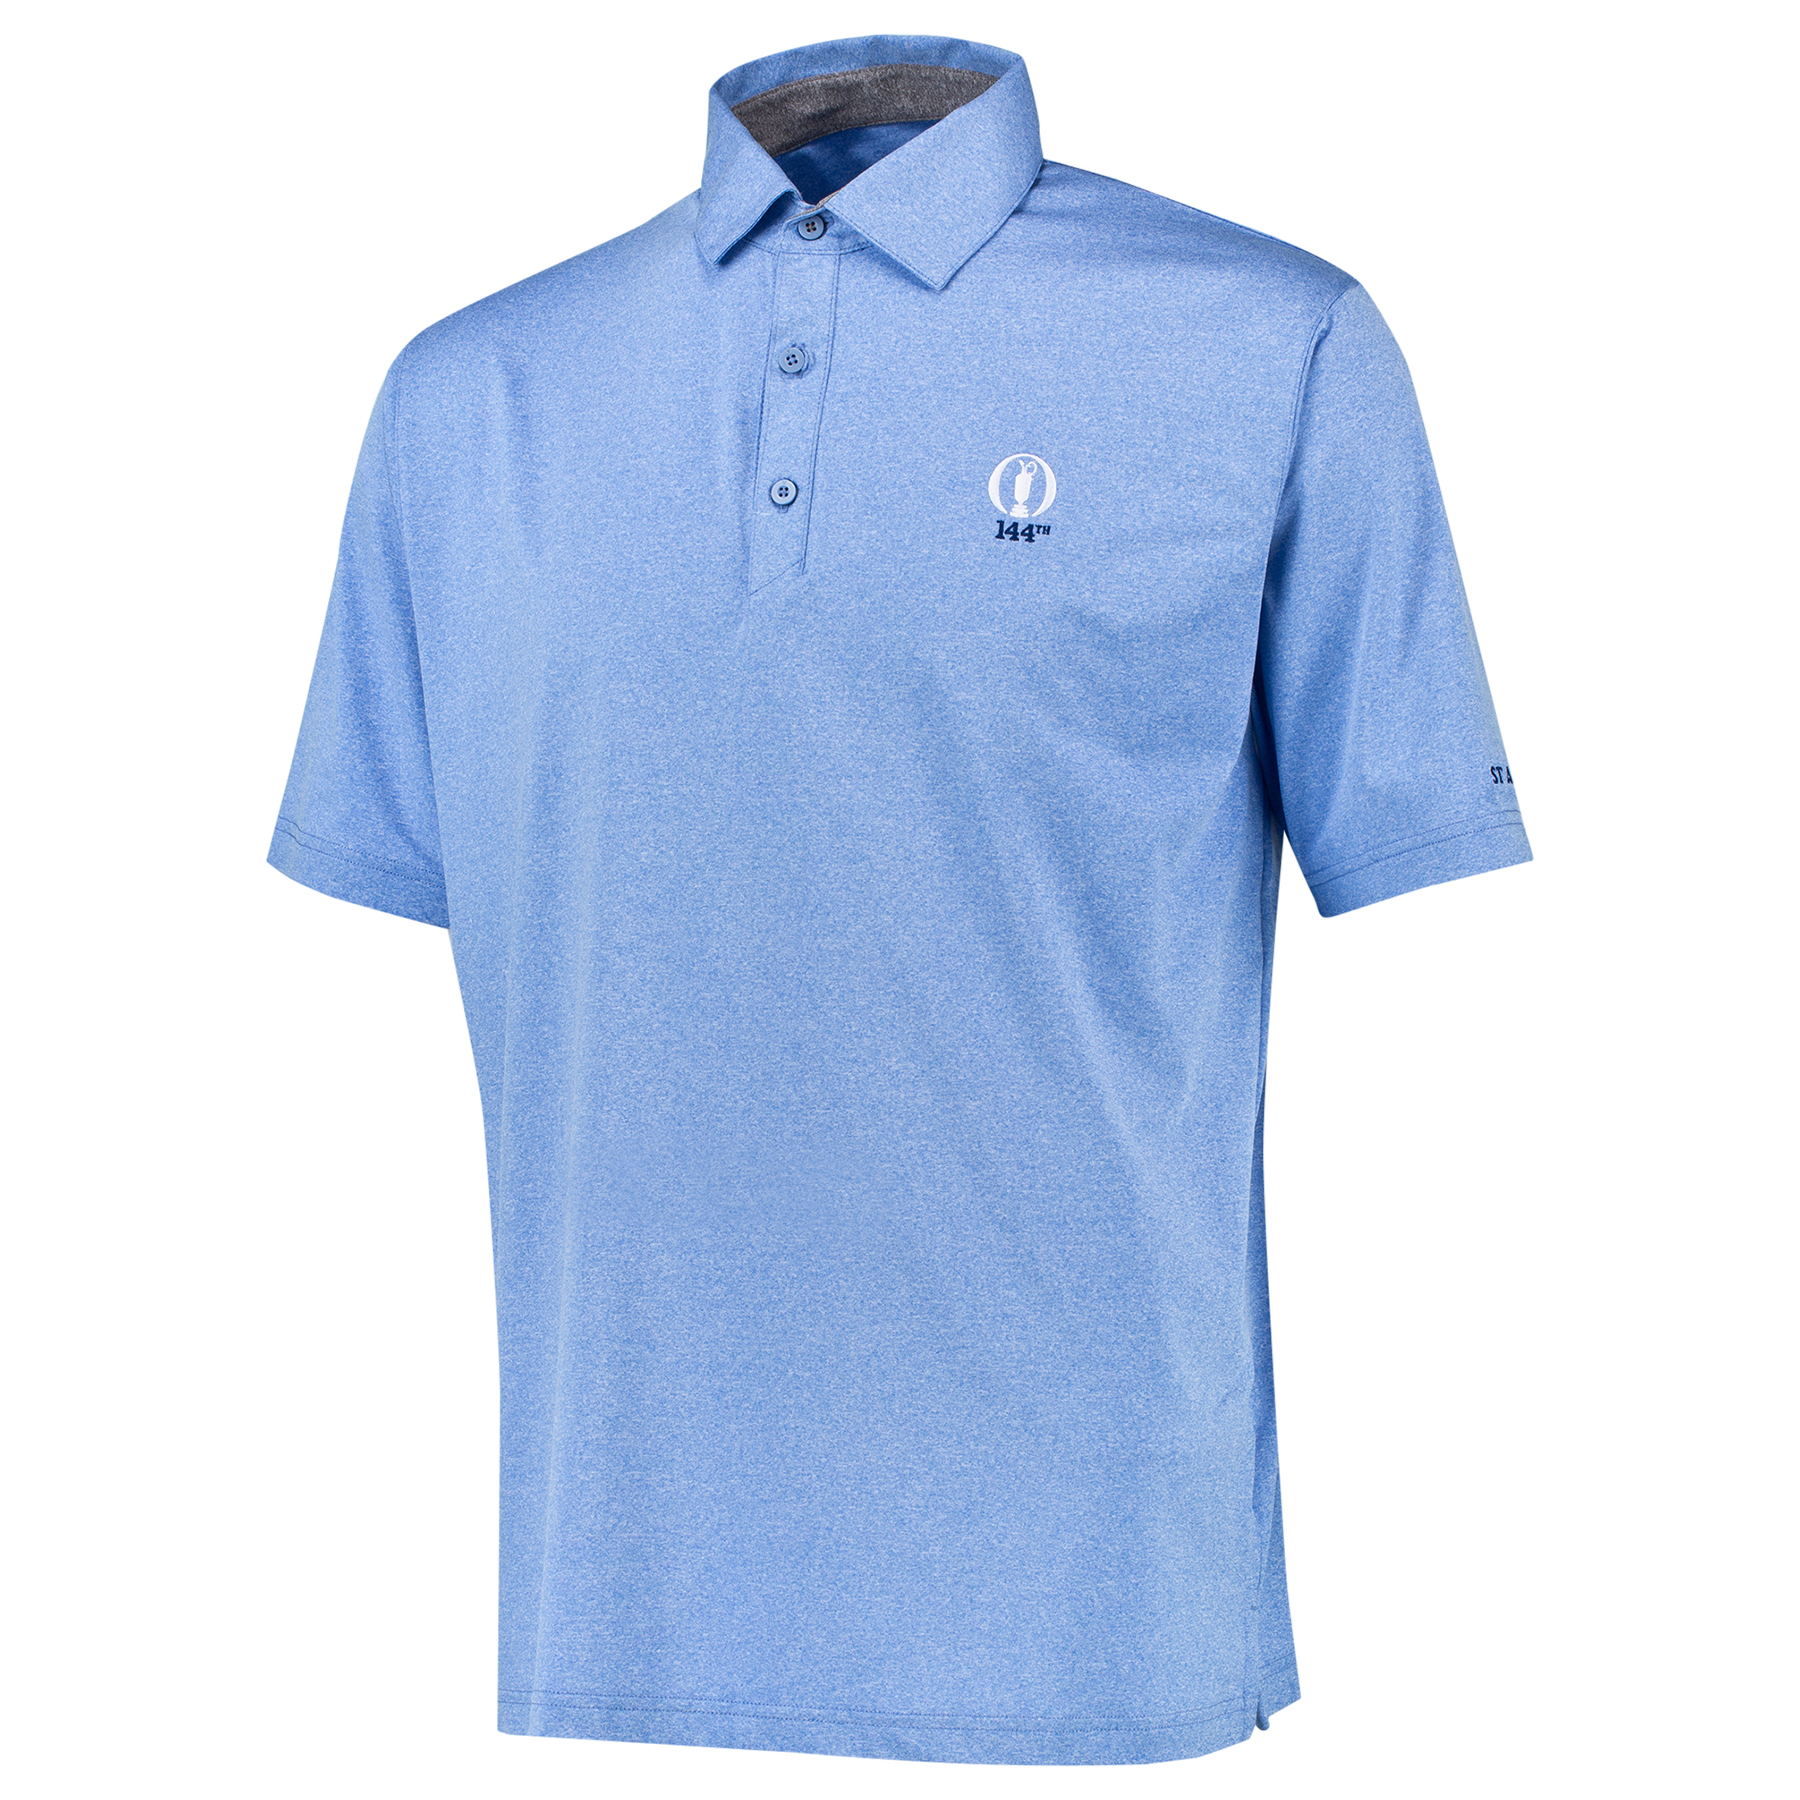 The Open 144th St Andrews Thermal Regulation Solid Polo - Oasis Blue